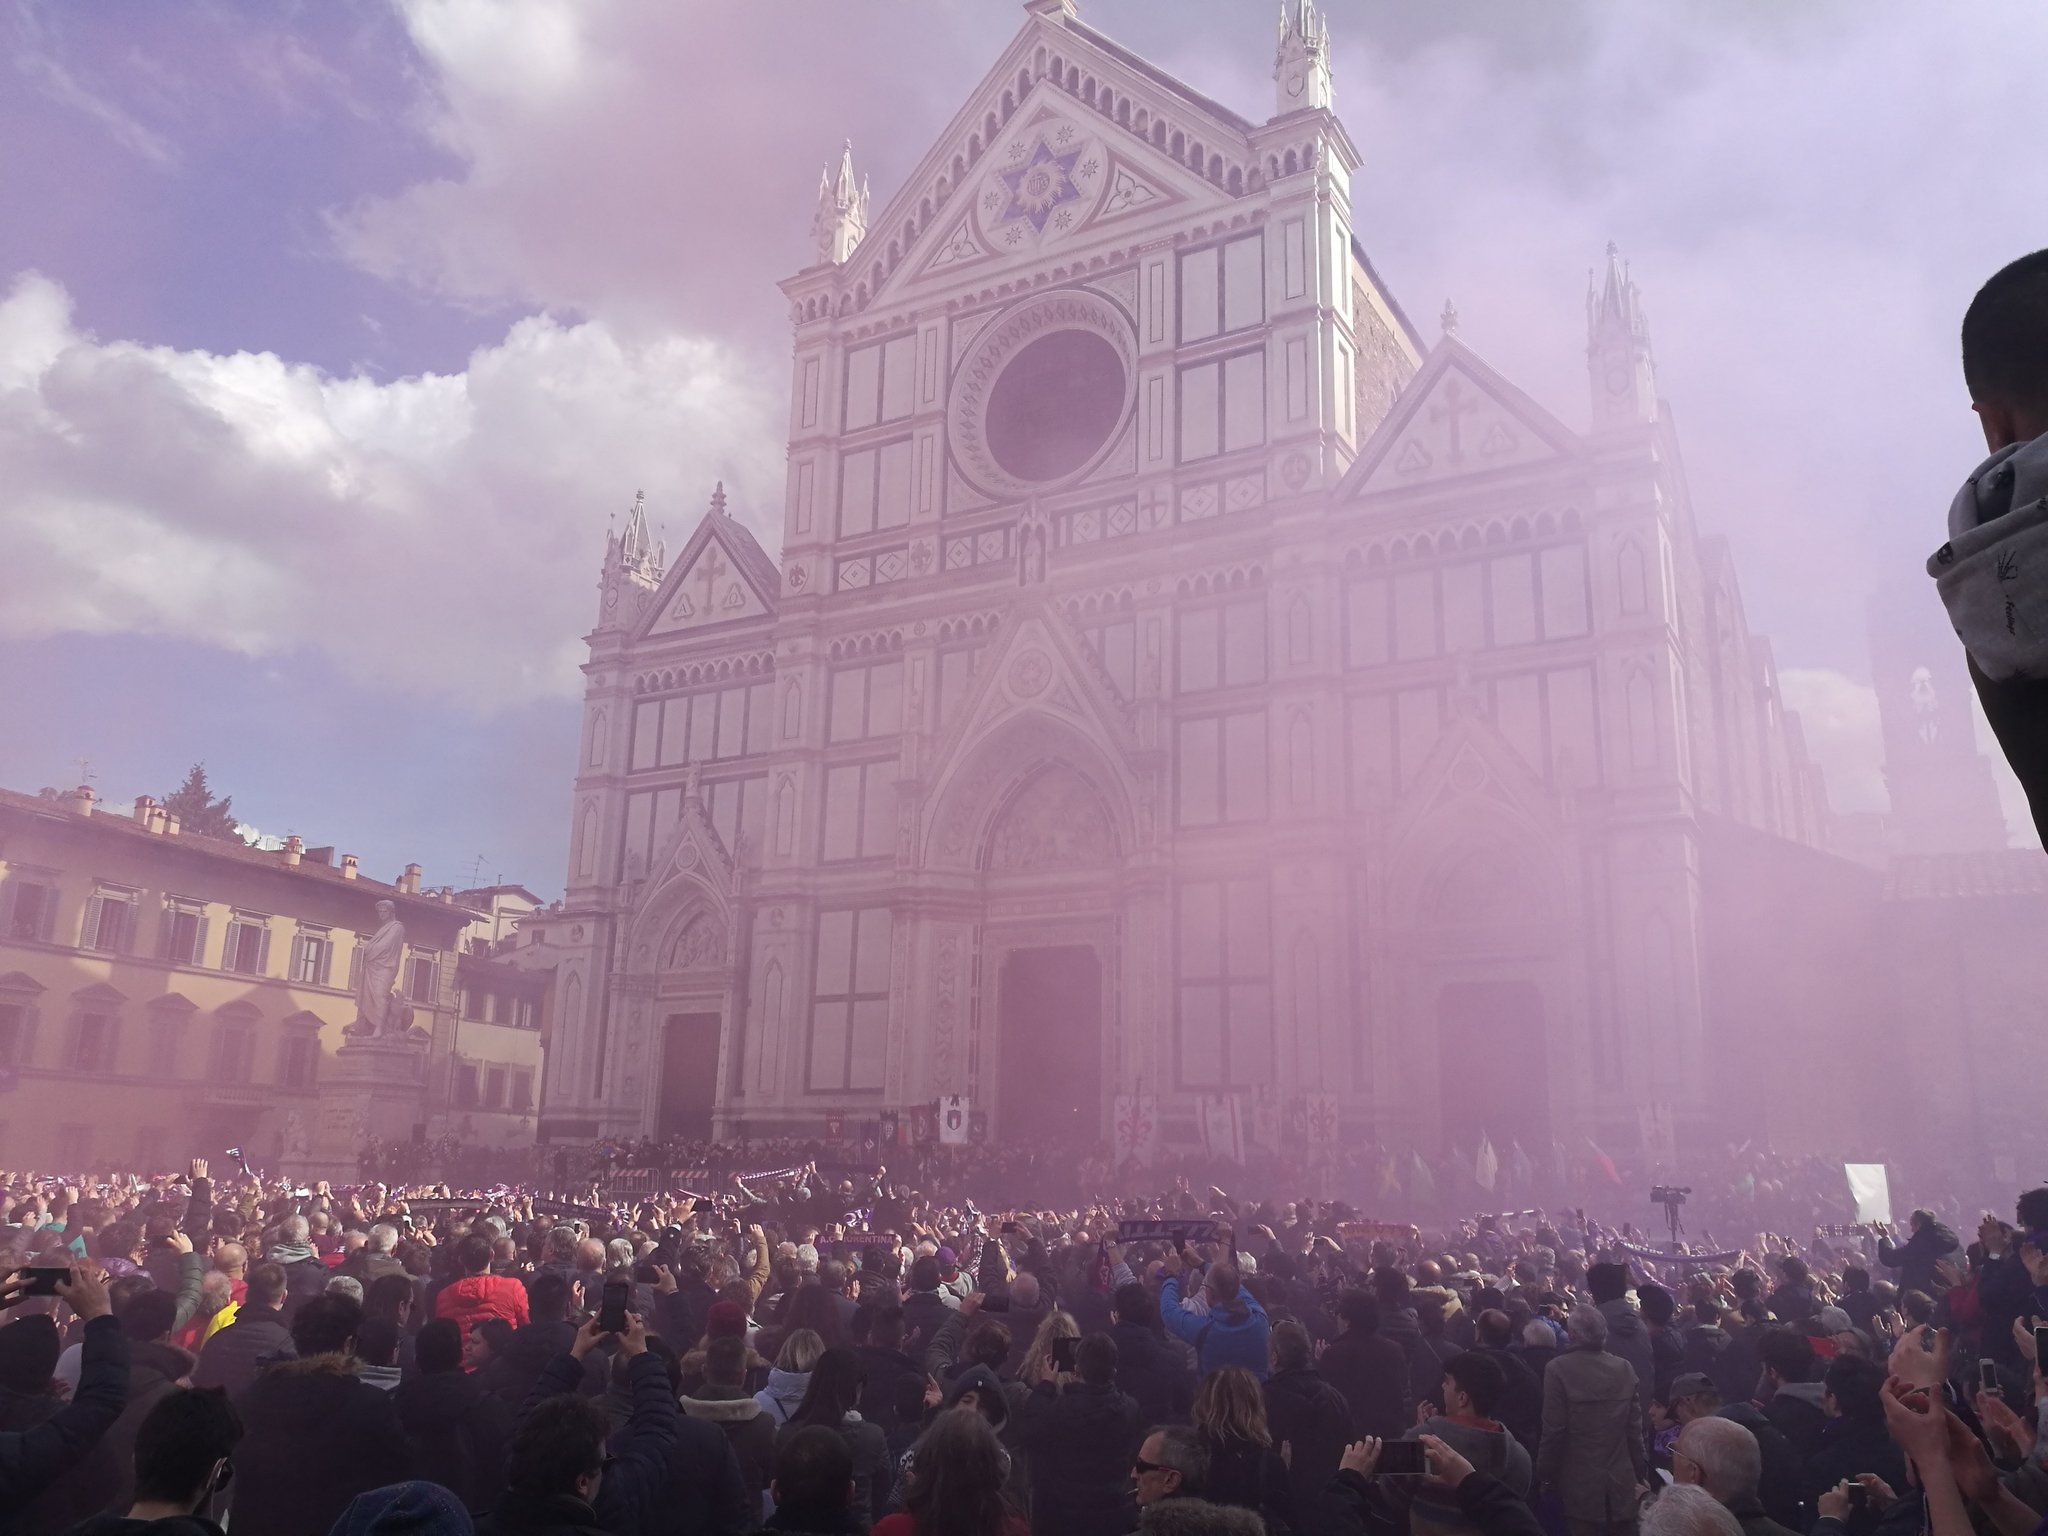 Florence is tinged with viola and yields a spectacular farewell to Davide Astori